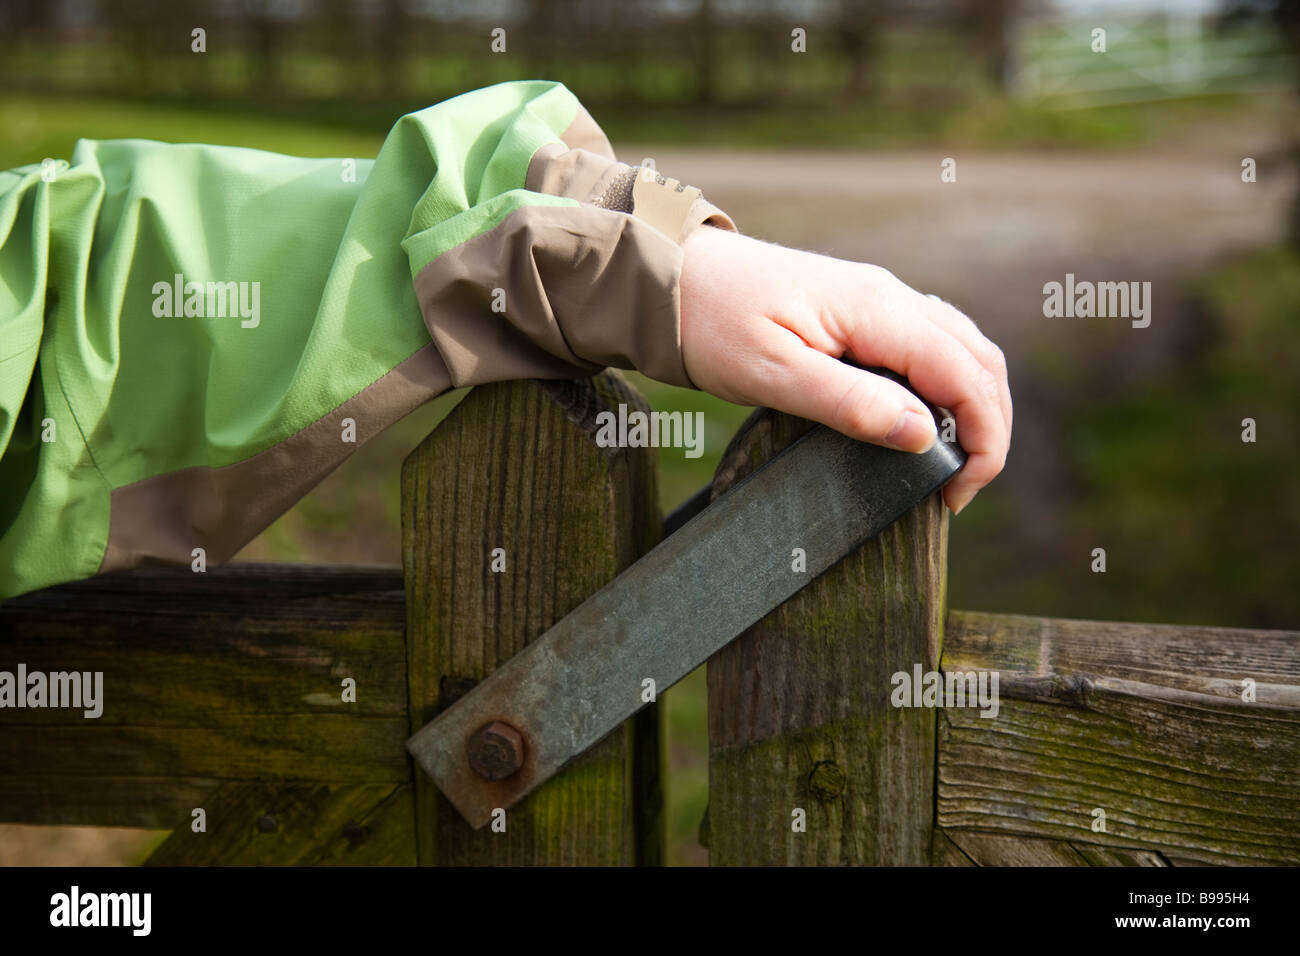 Closing The Gate Stock Photos Amp Closing The Gate Stock